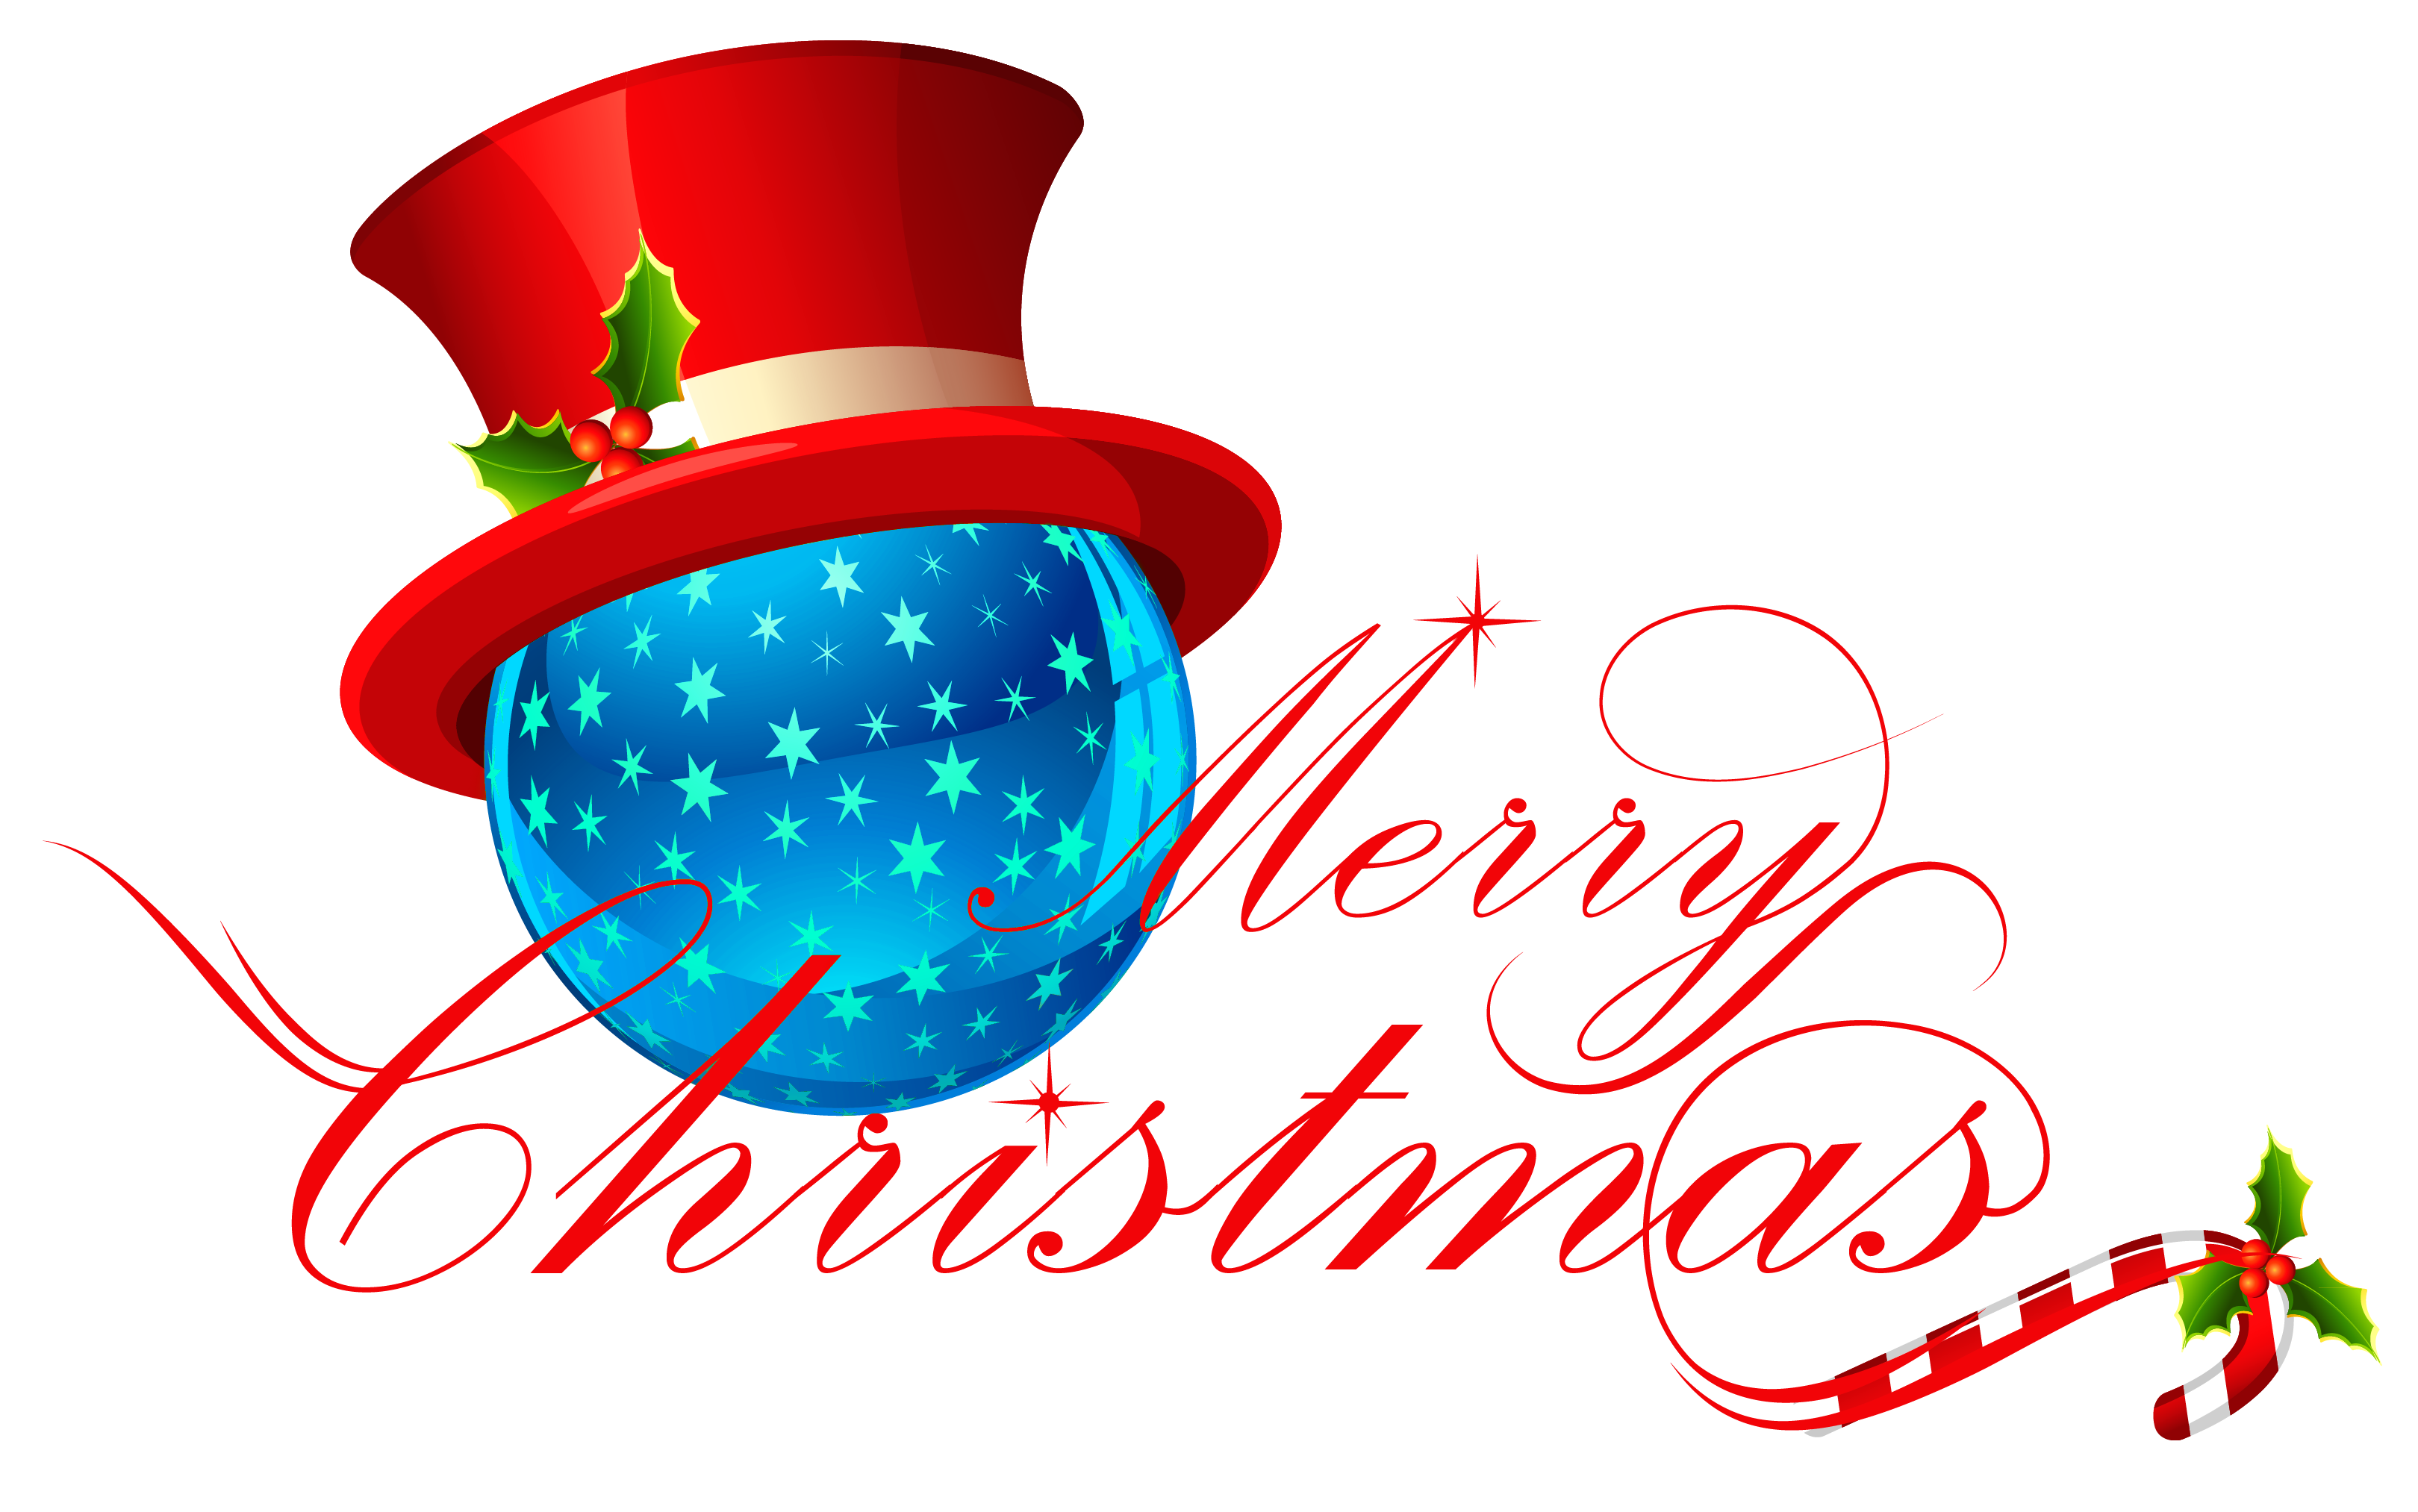 File:Transparent Merry .